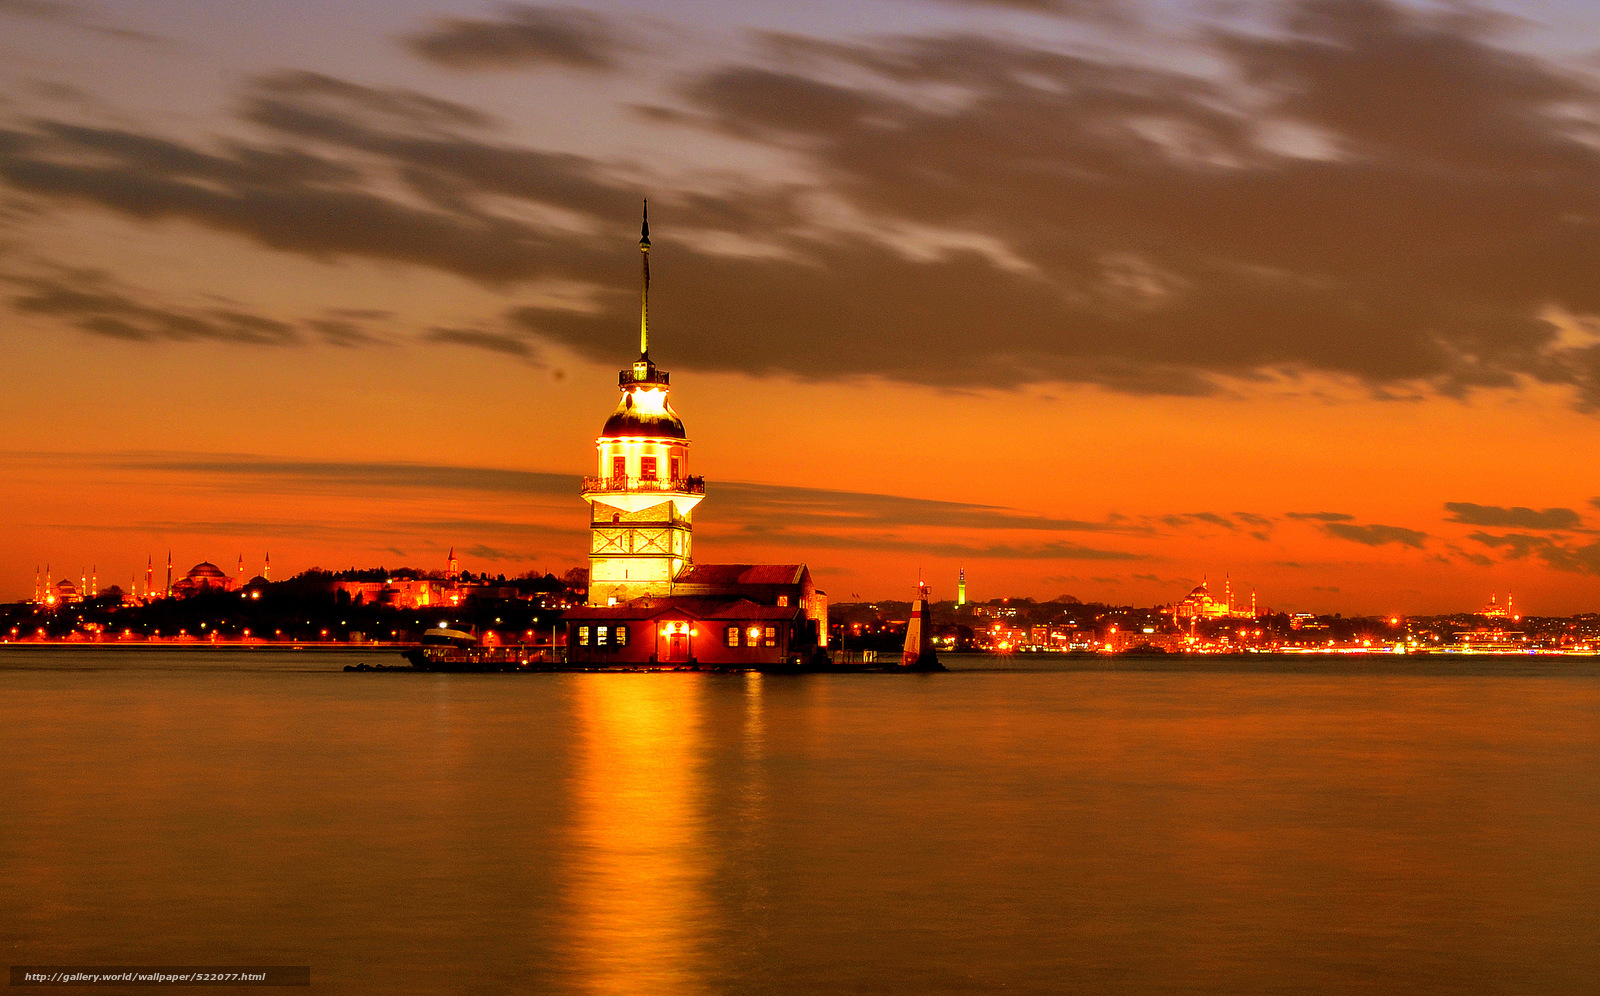 Download wallpaper istanbul, sunset, city, lights free ...